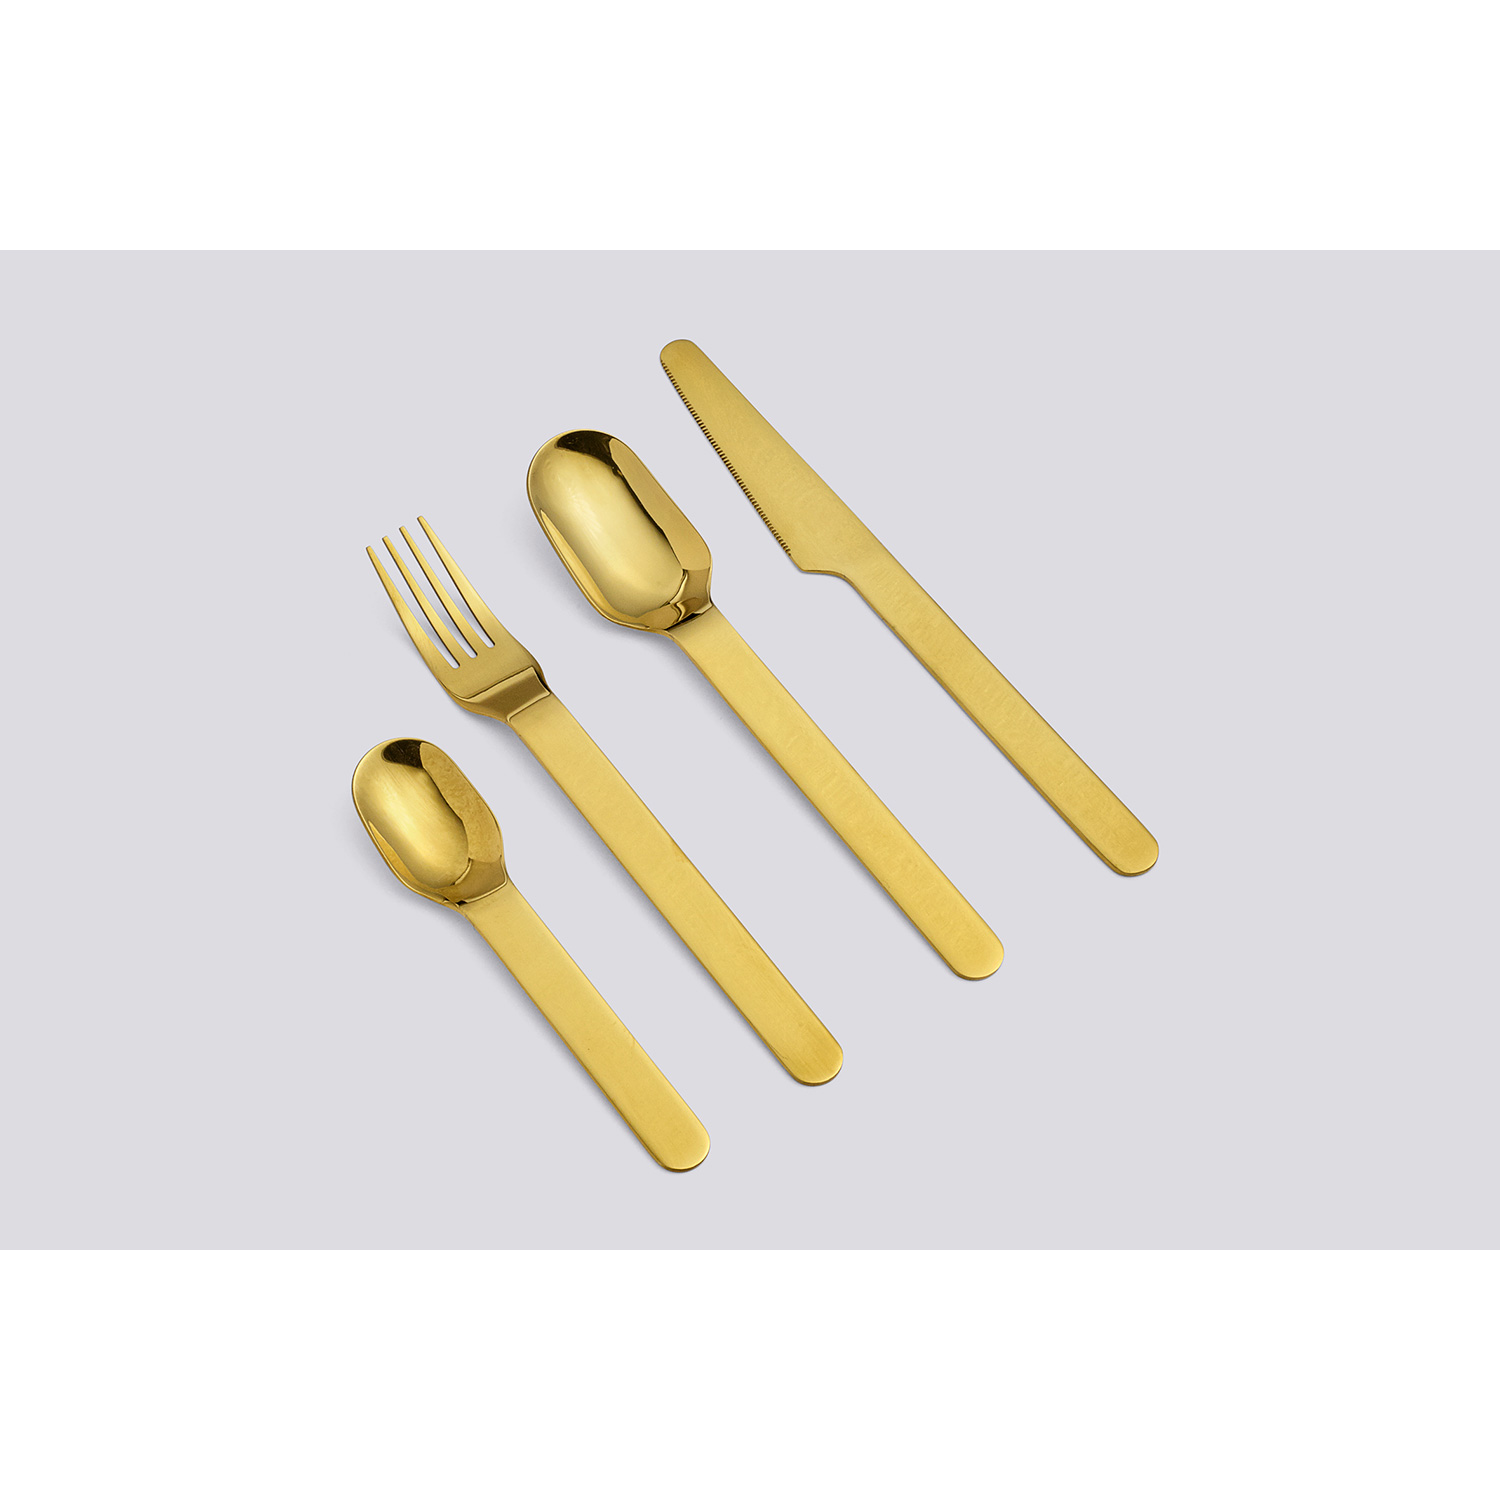 Everyday spoon 5-pack, guld